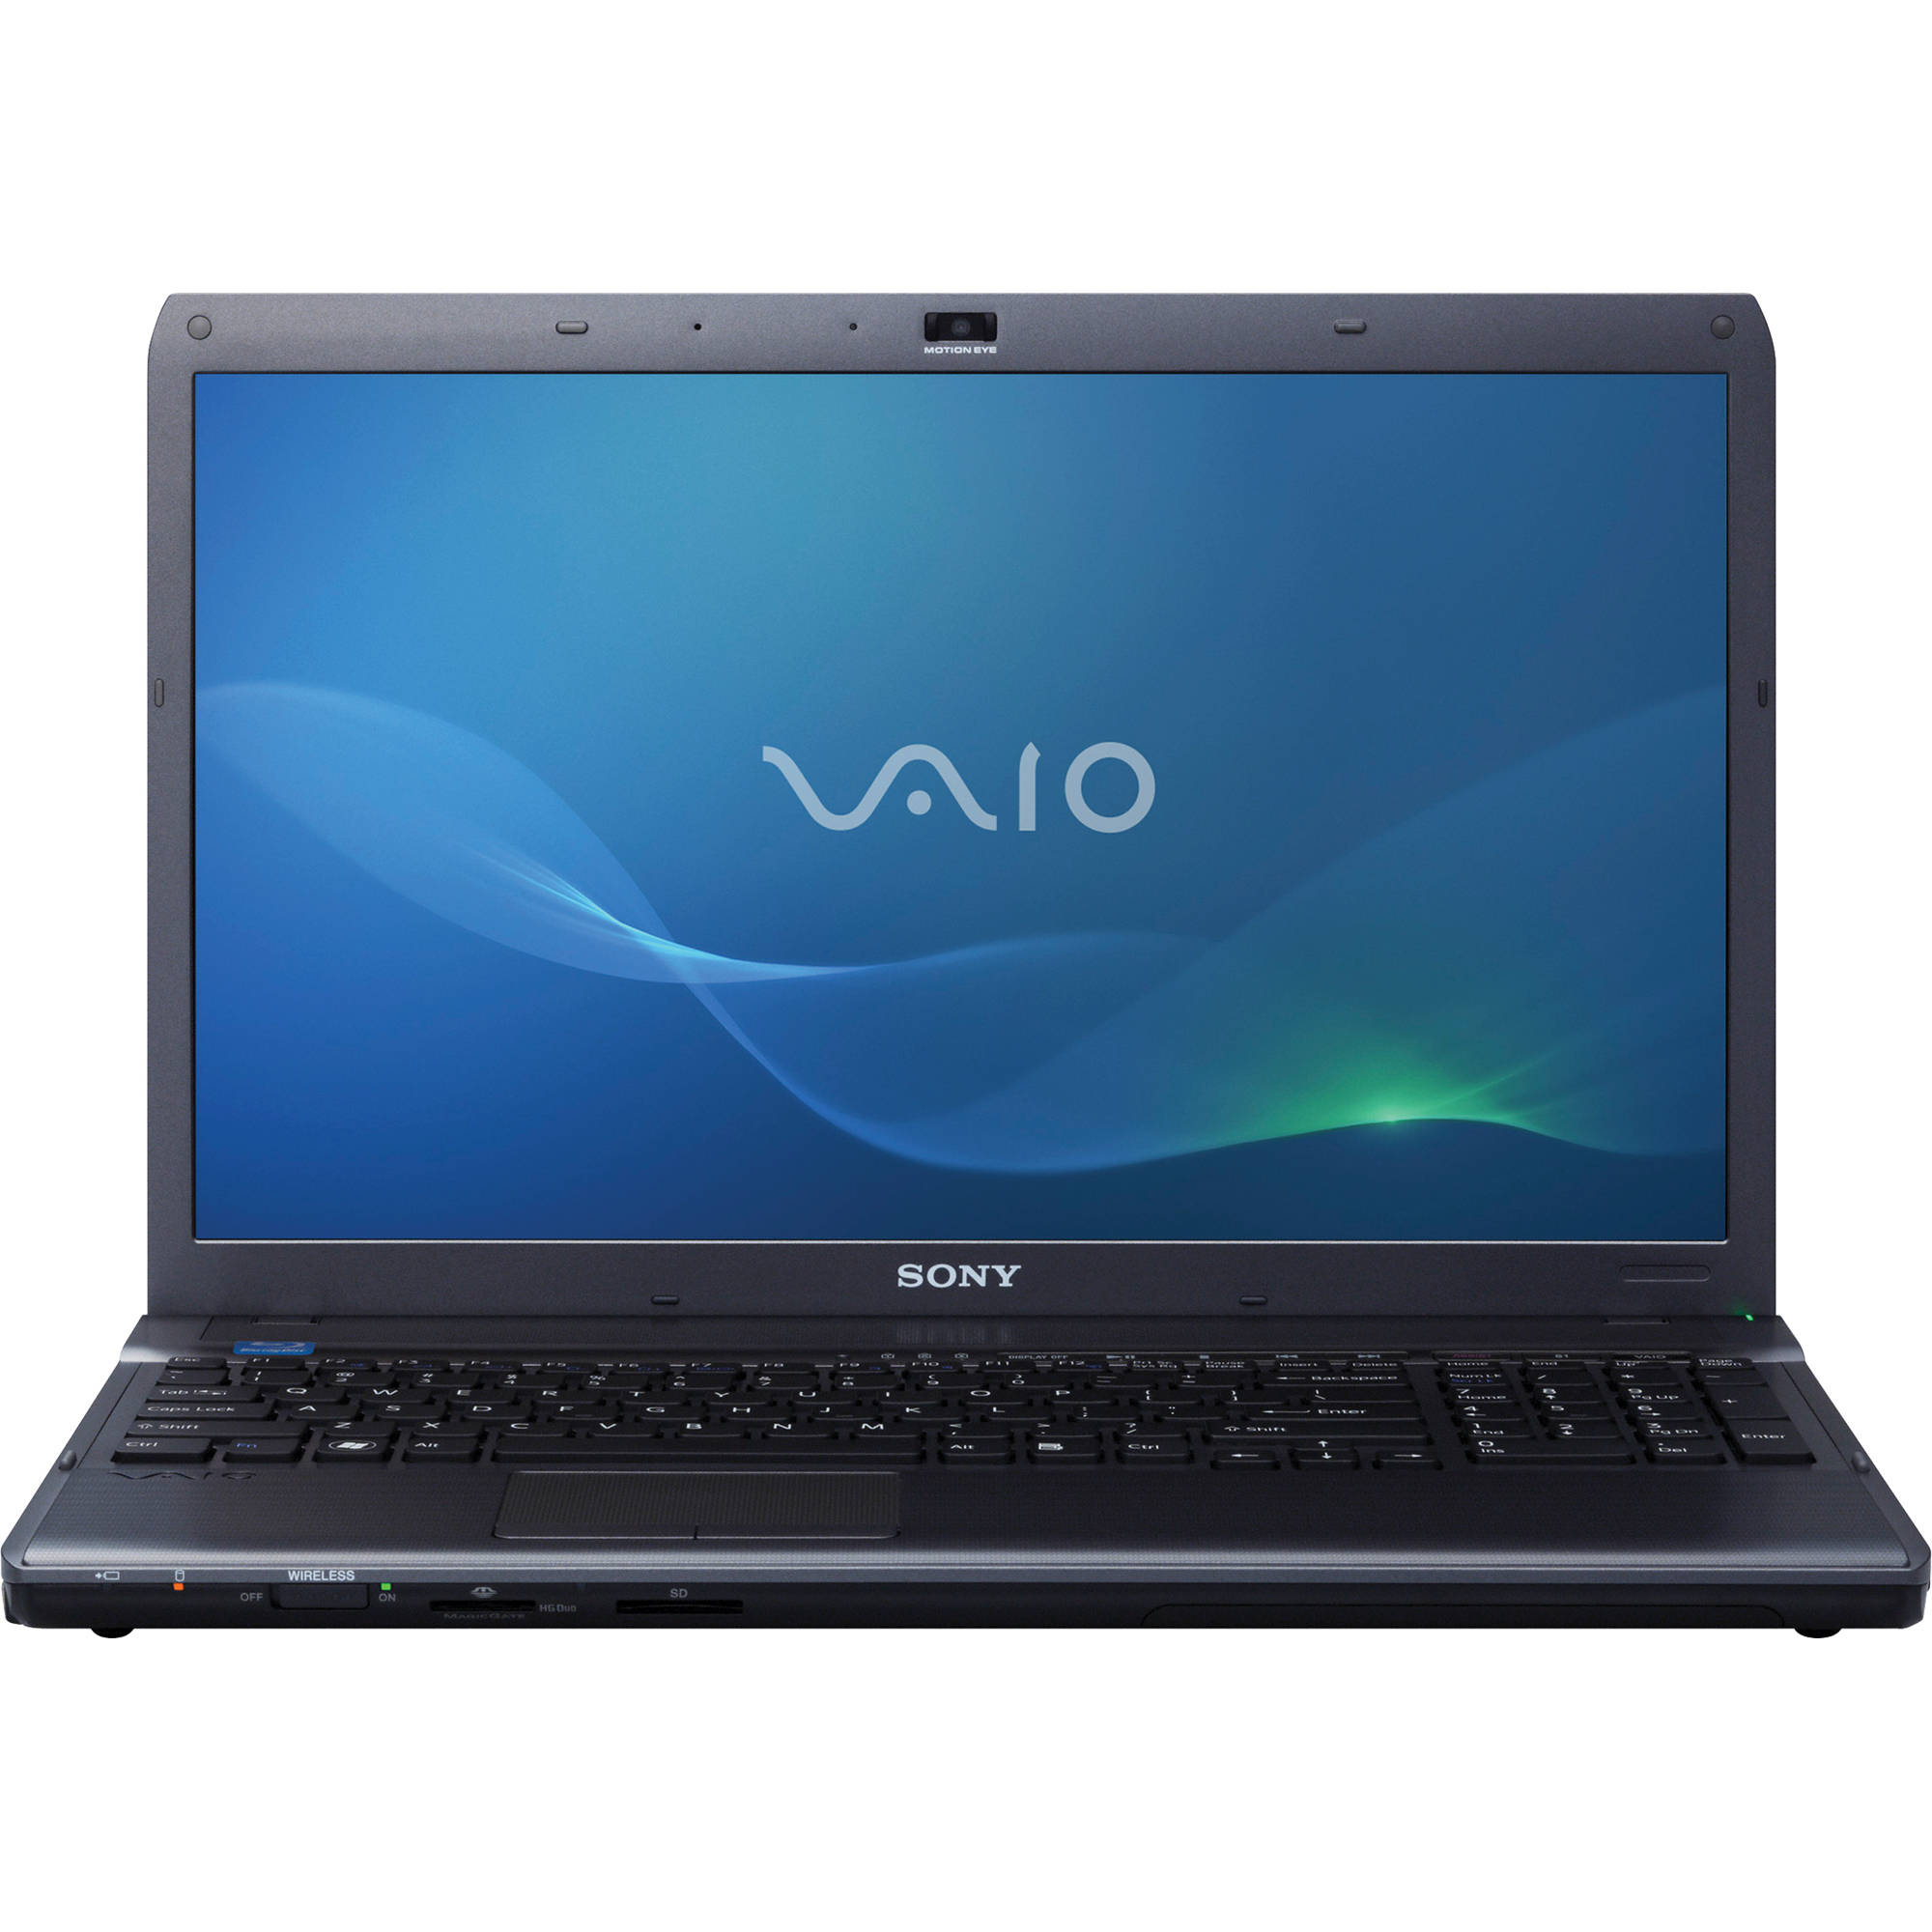 Sony Vaio VPCF13YFX/B TouchPad Settings 64 Bit